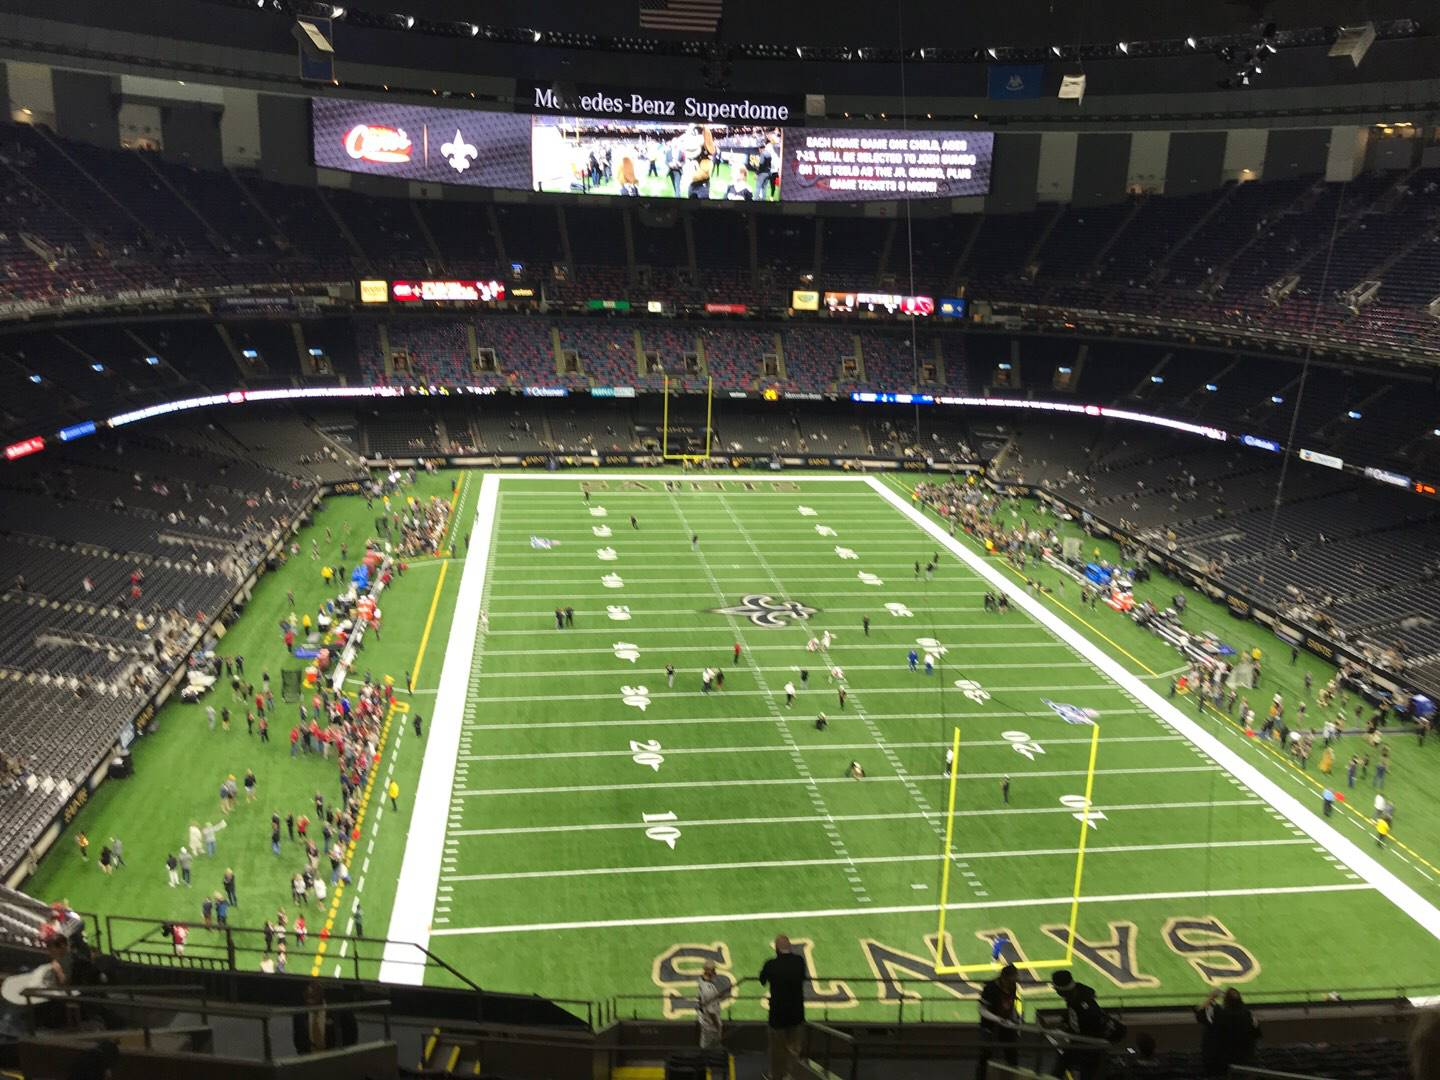 Mercedes-Benz Superdome Section 603 Row 16 Seat 8